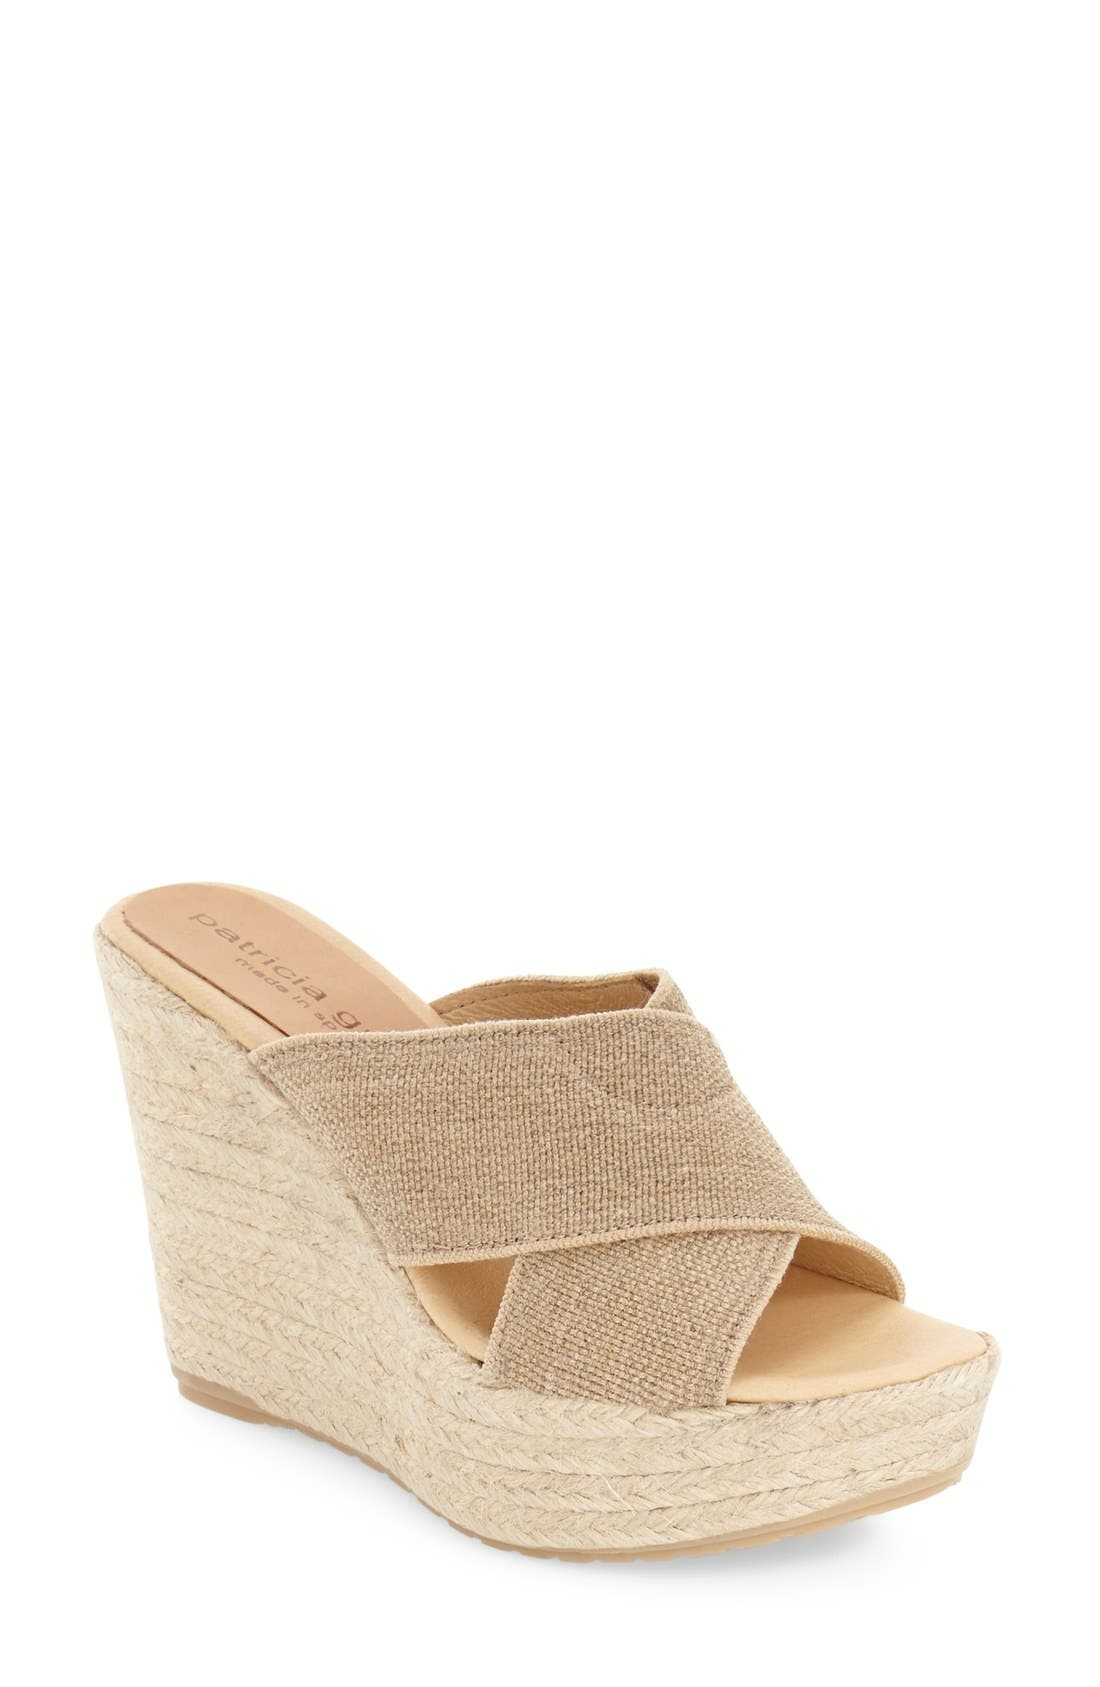 'Nora' Espadrille Wedge,                         Main,                         color, Natural